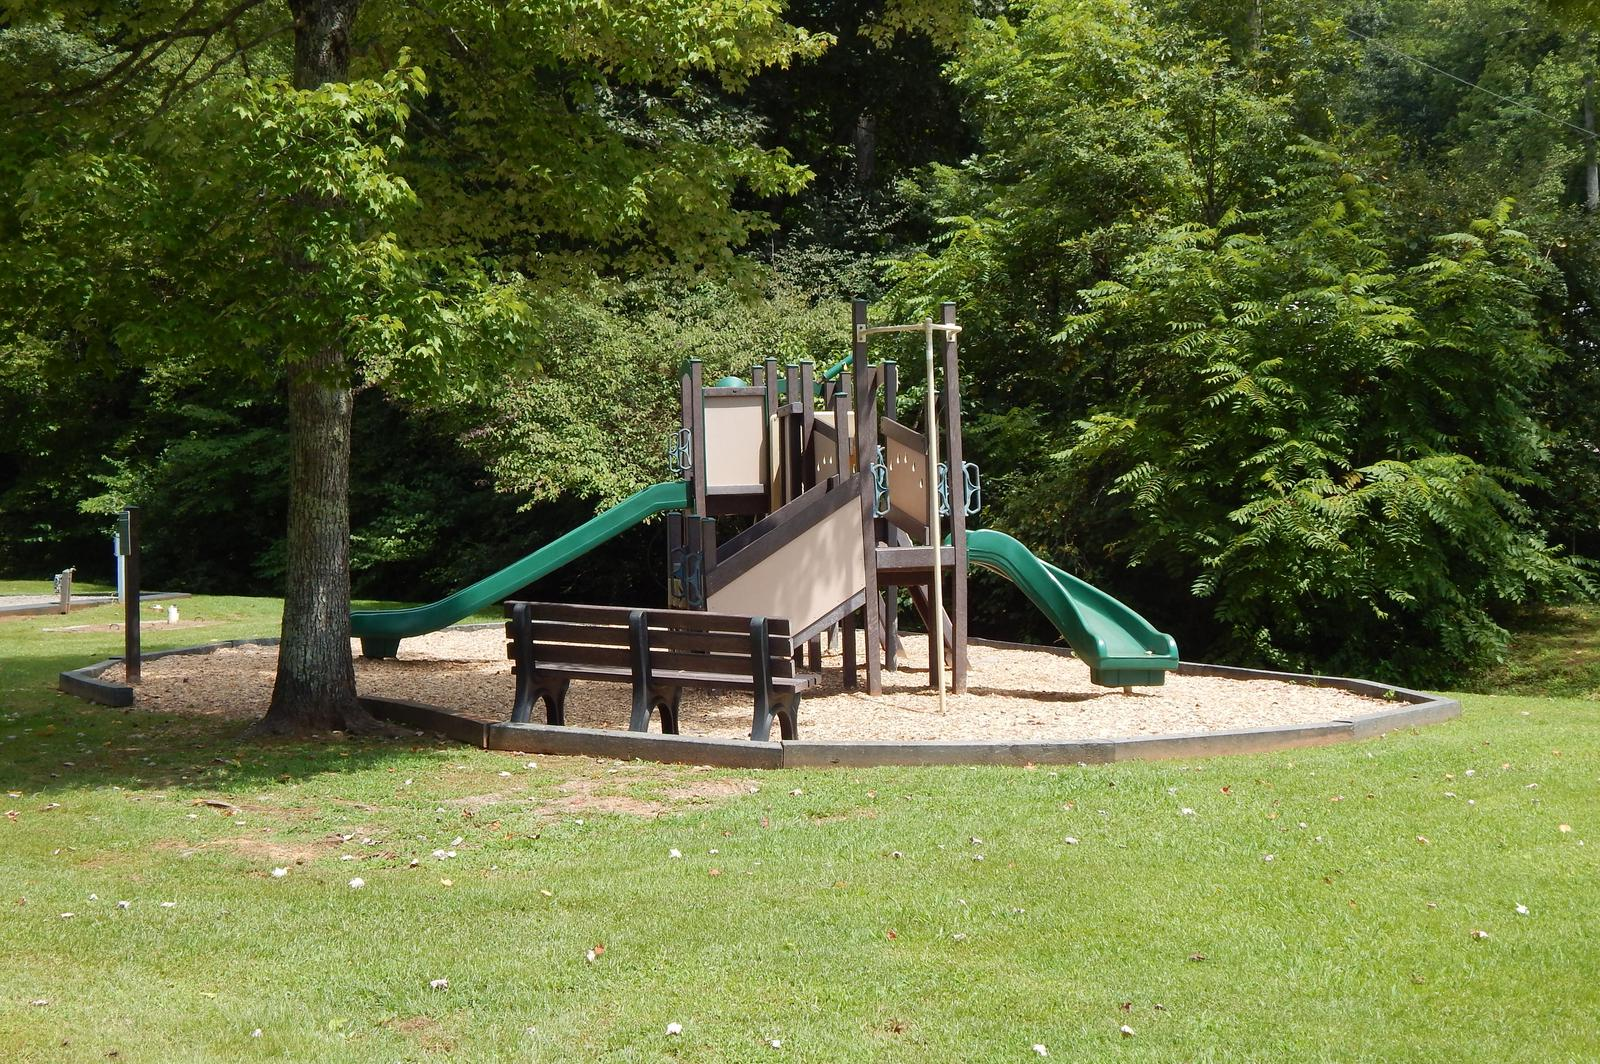 A small playground nestled in the trees and surrounded by manicured grass.A playground located at the campground.